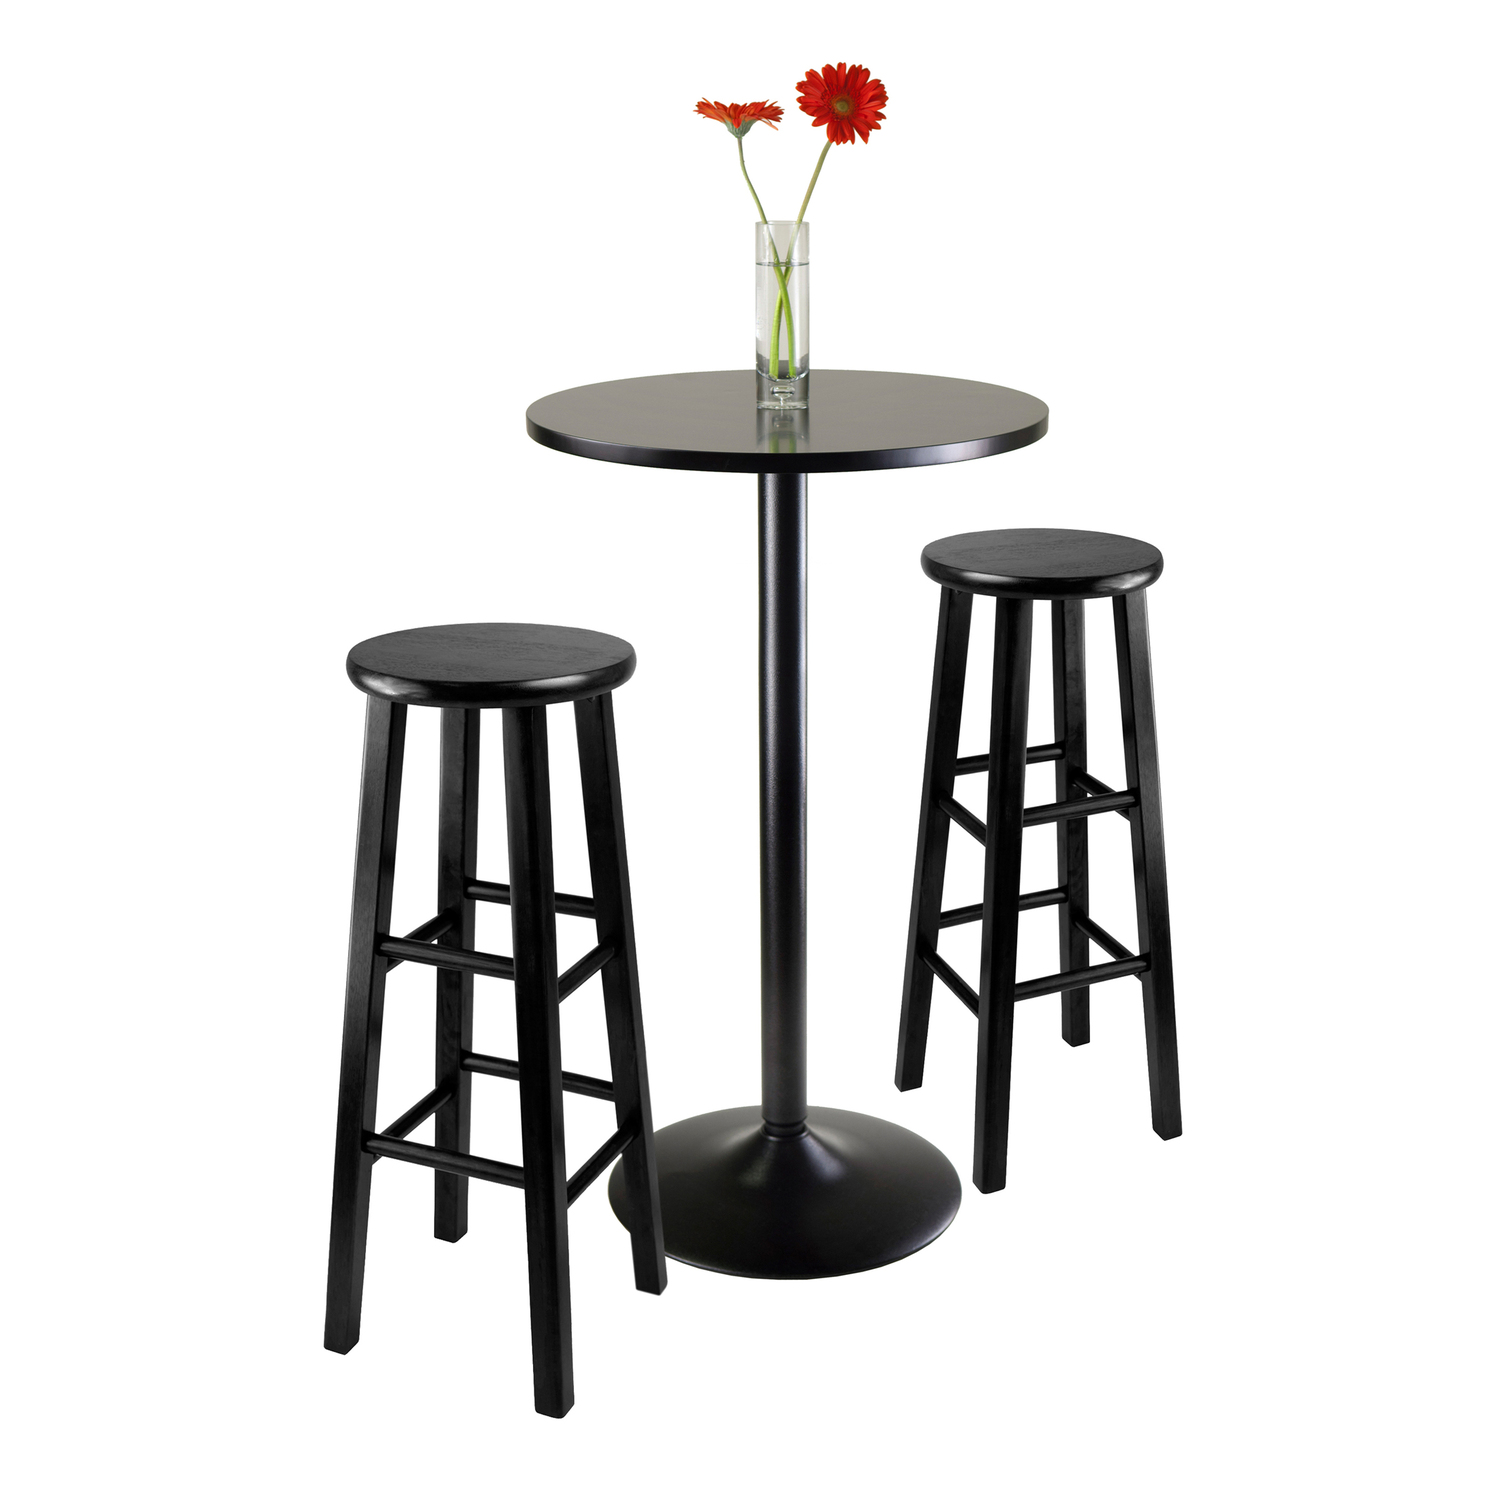 Obsidian 3 Piece Round Black Pub Table Set 308 34